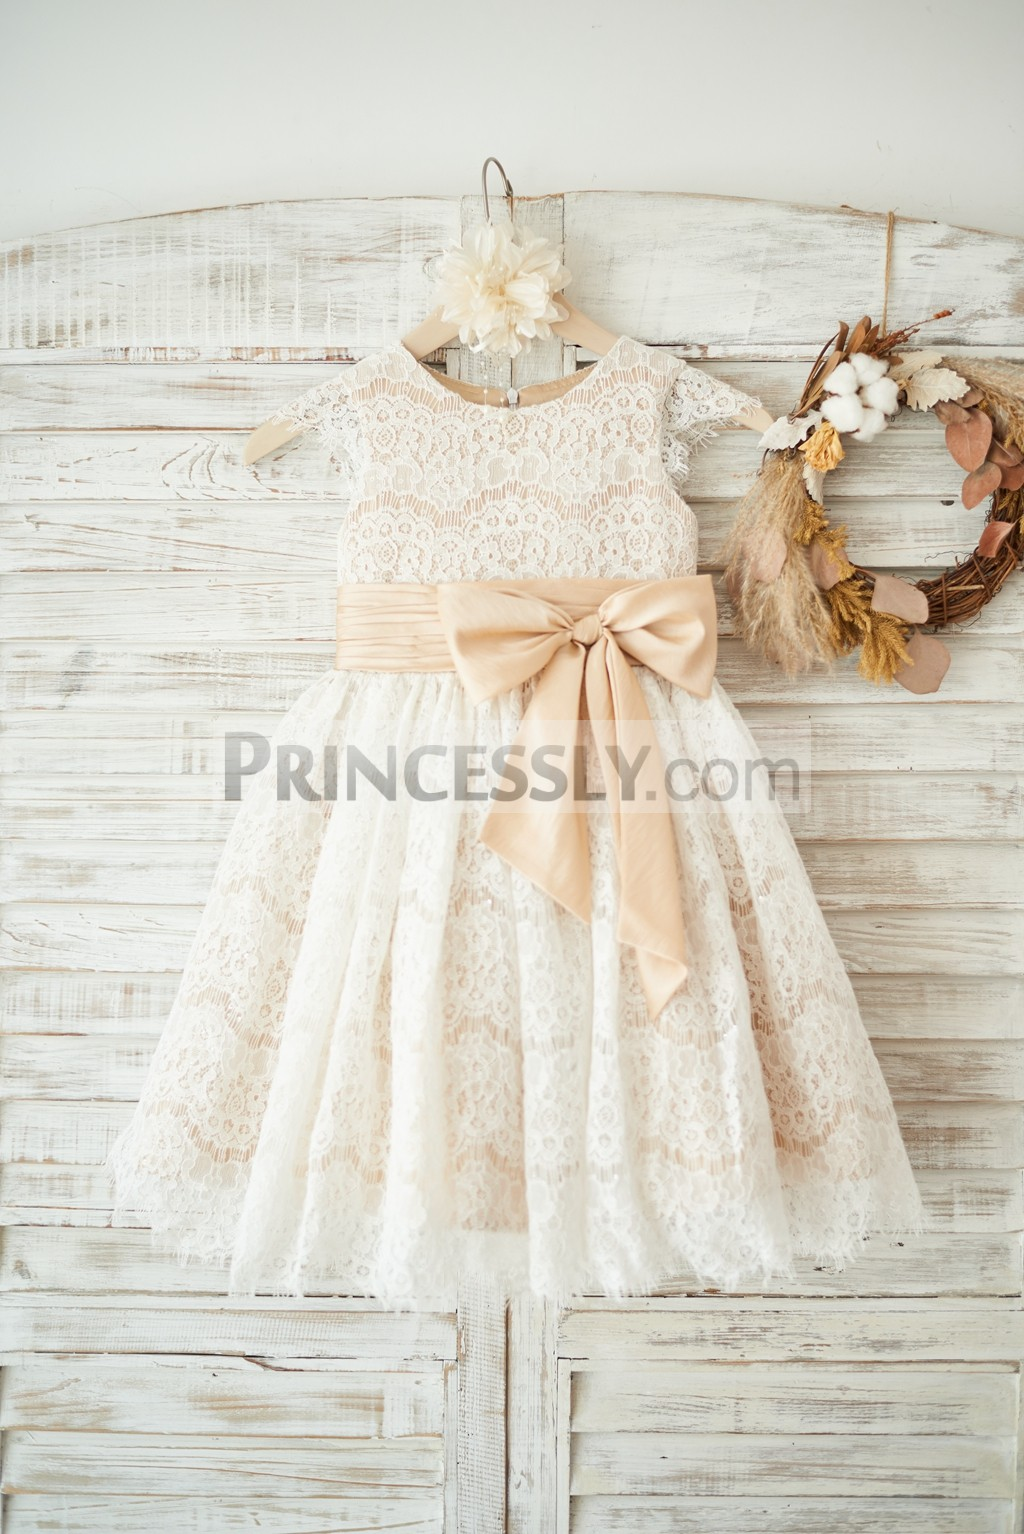 Princessly.com-K1003555-Champagne Satin Ivory Lace Cap Sleeves Wedding Flower Girl Dress with Bow Belt-31